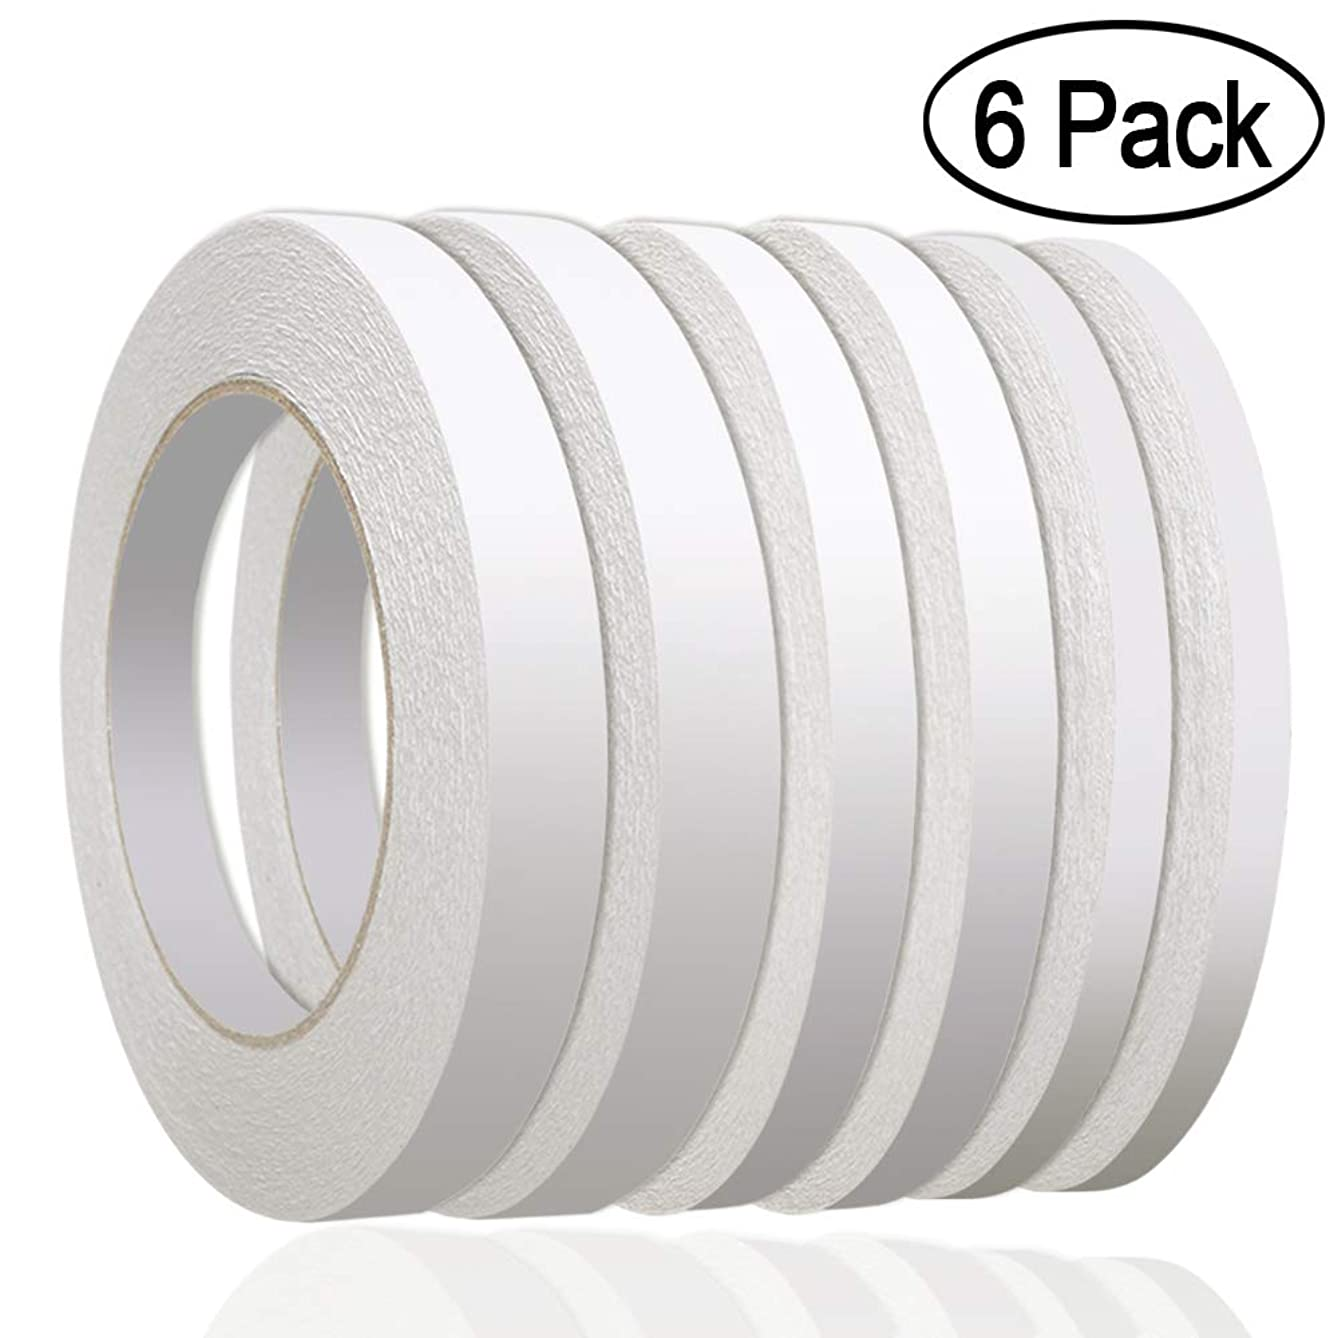 236 Yards Double Sided Tape, Aniann 6 Rolls Heavy Duty Adhesive Sticky Tape Two Sided Tapes for Scrapbooking, Card Making, Gift Wrapping, Arts & Crafts ((1/4